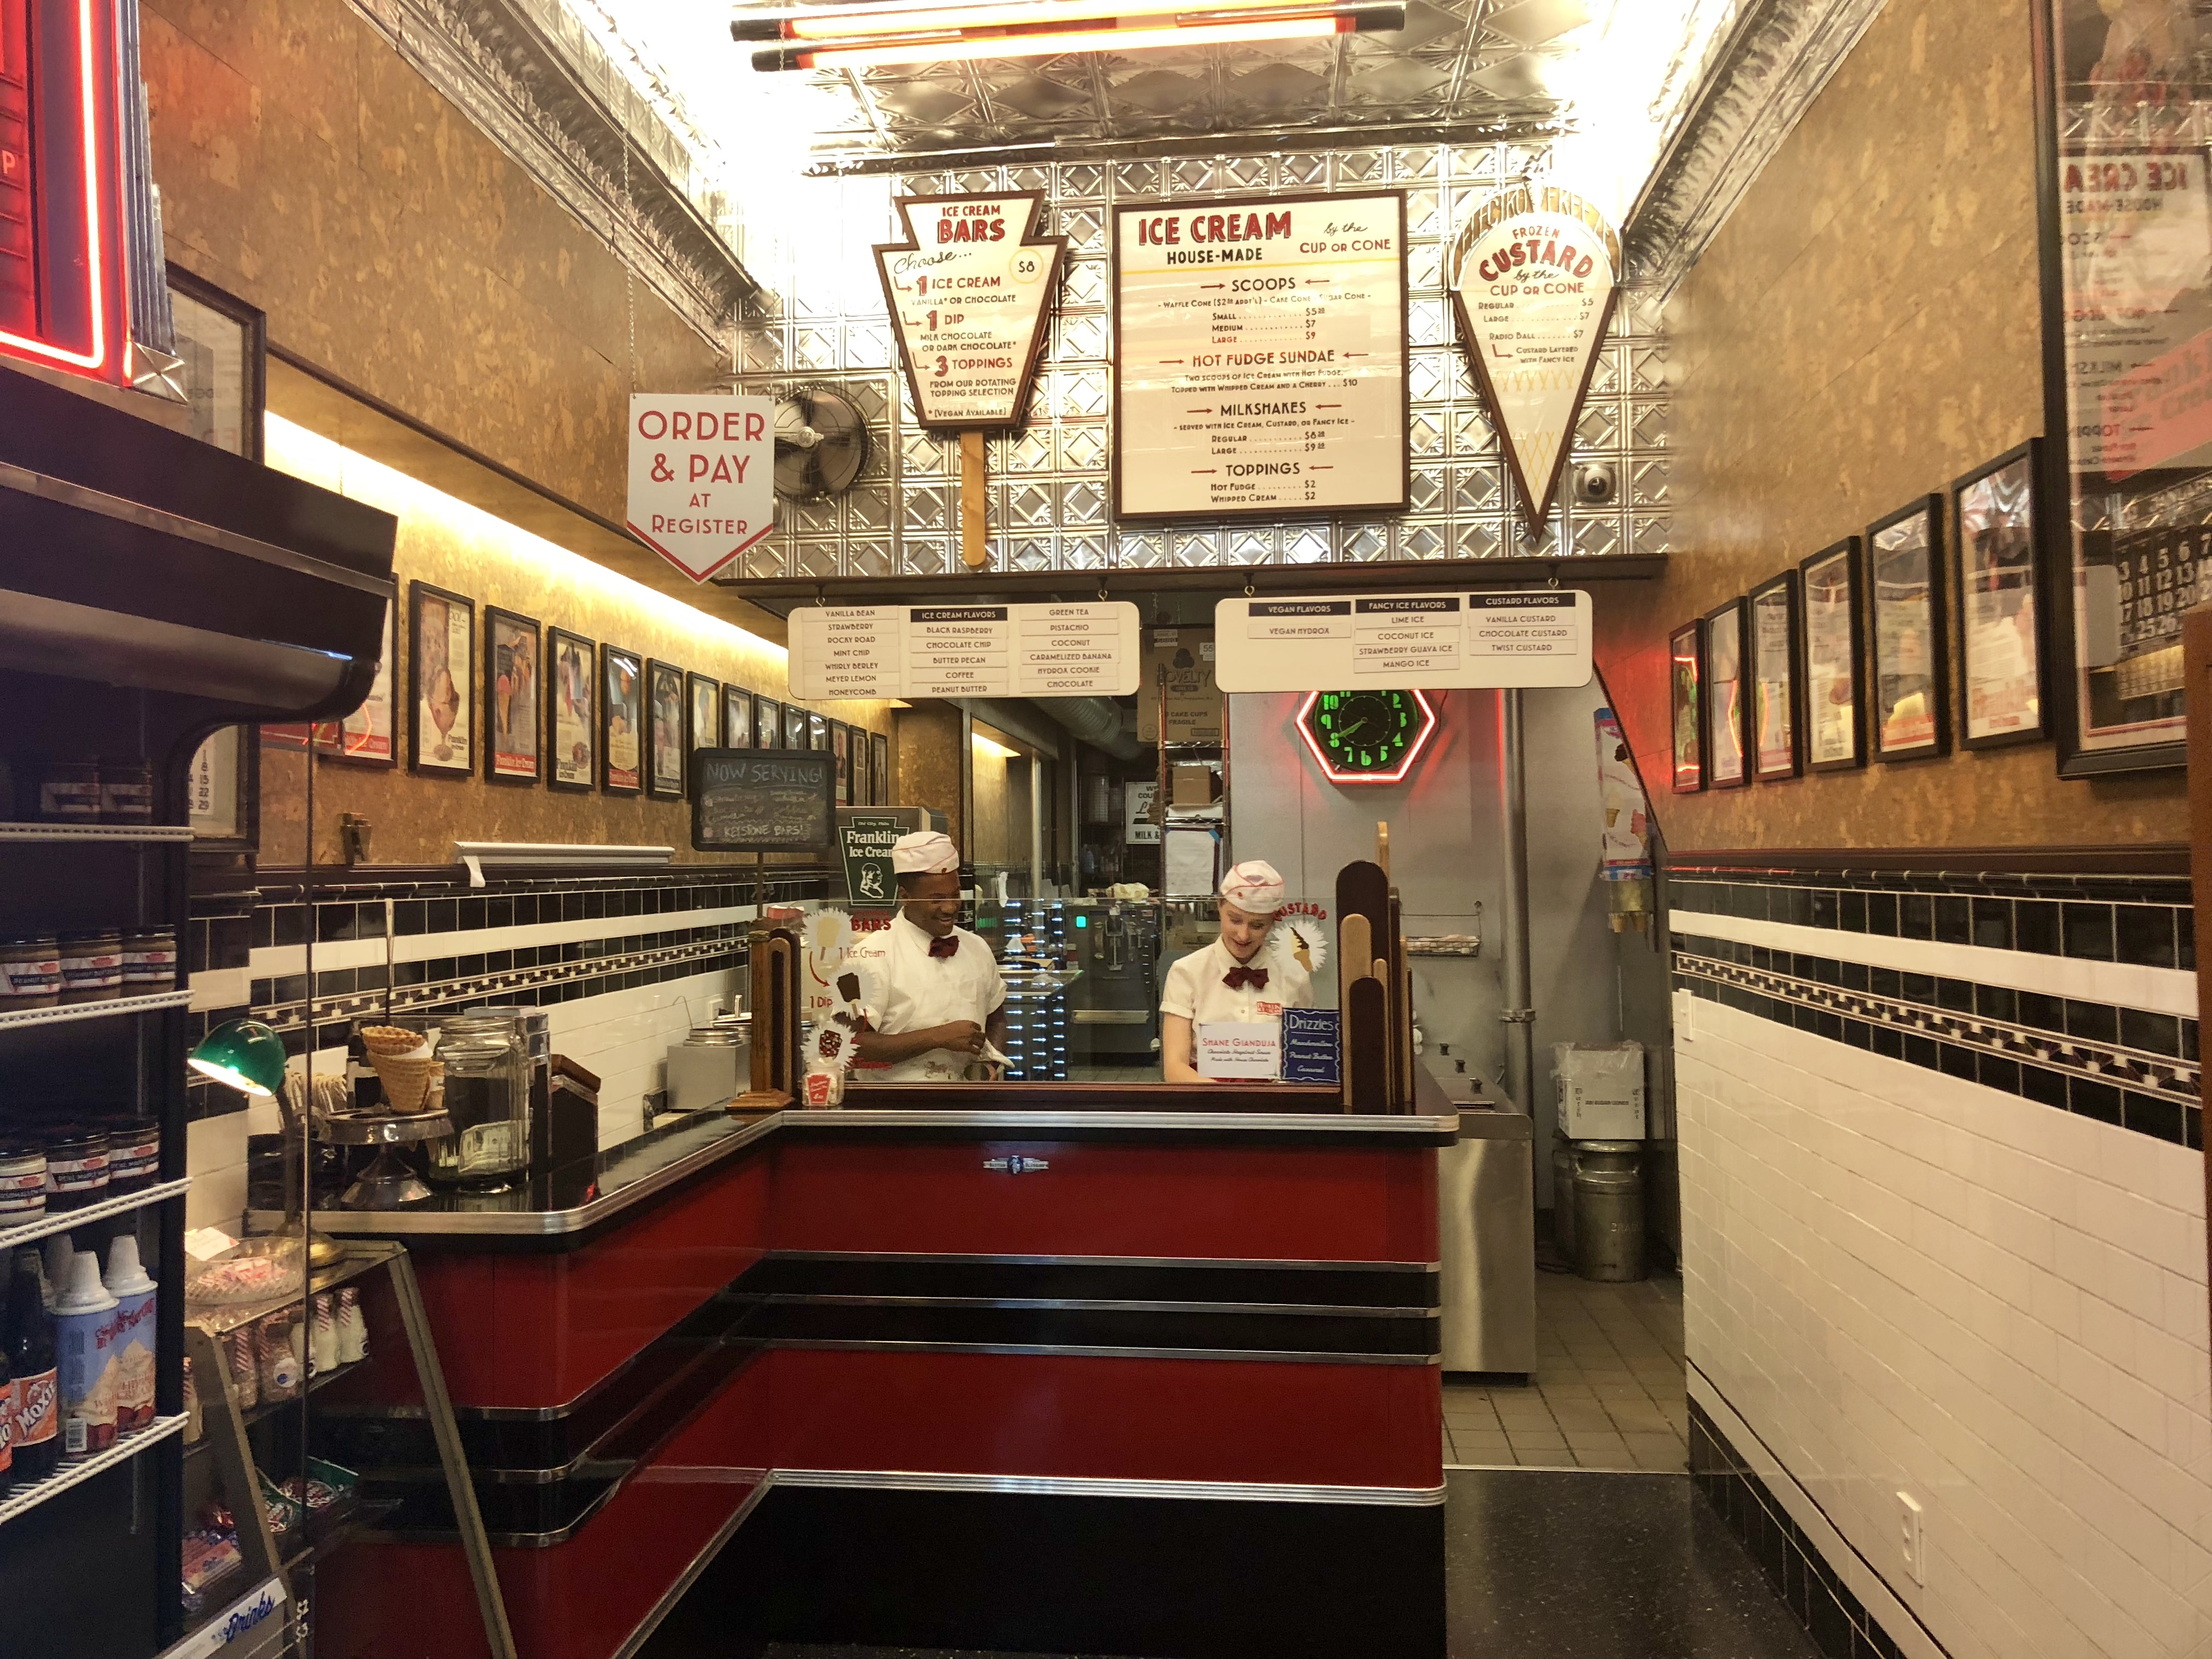 The interior of the new Franklin Ice Cream Bar in Old City was built with an Art Deco theme from some vintage materials.